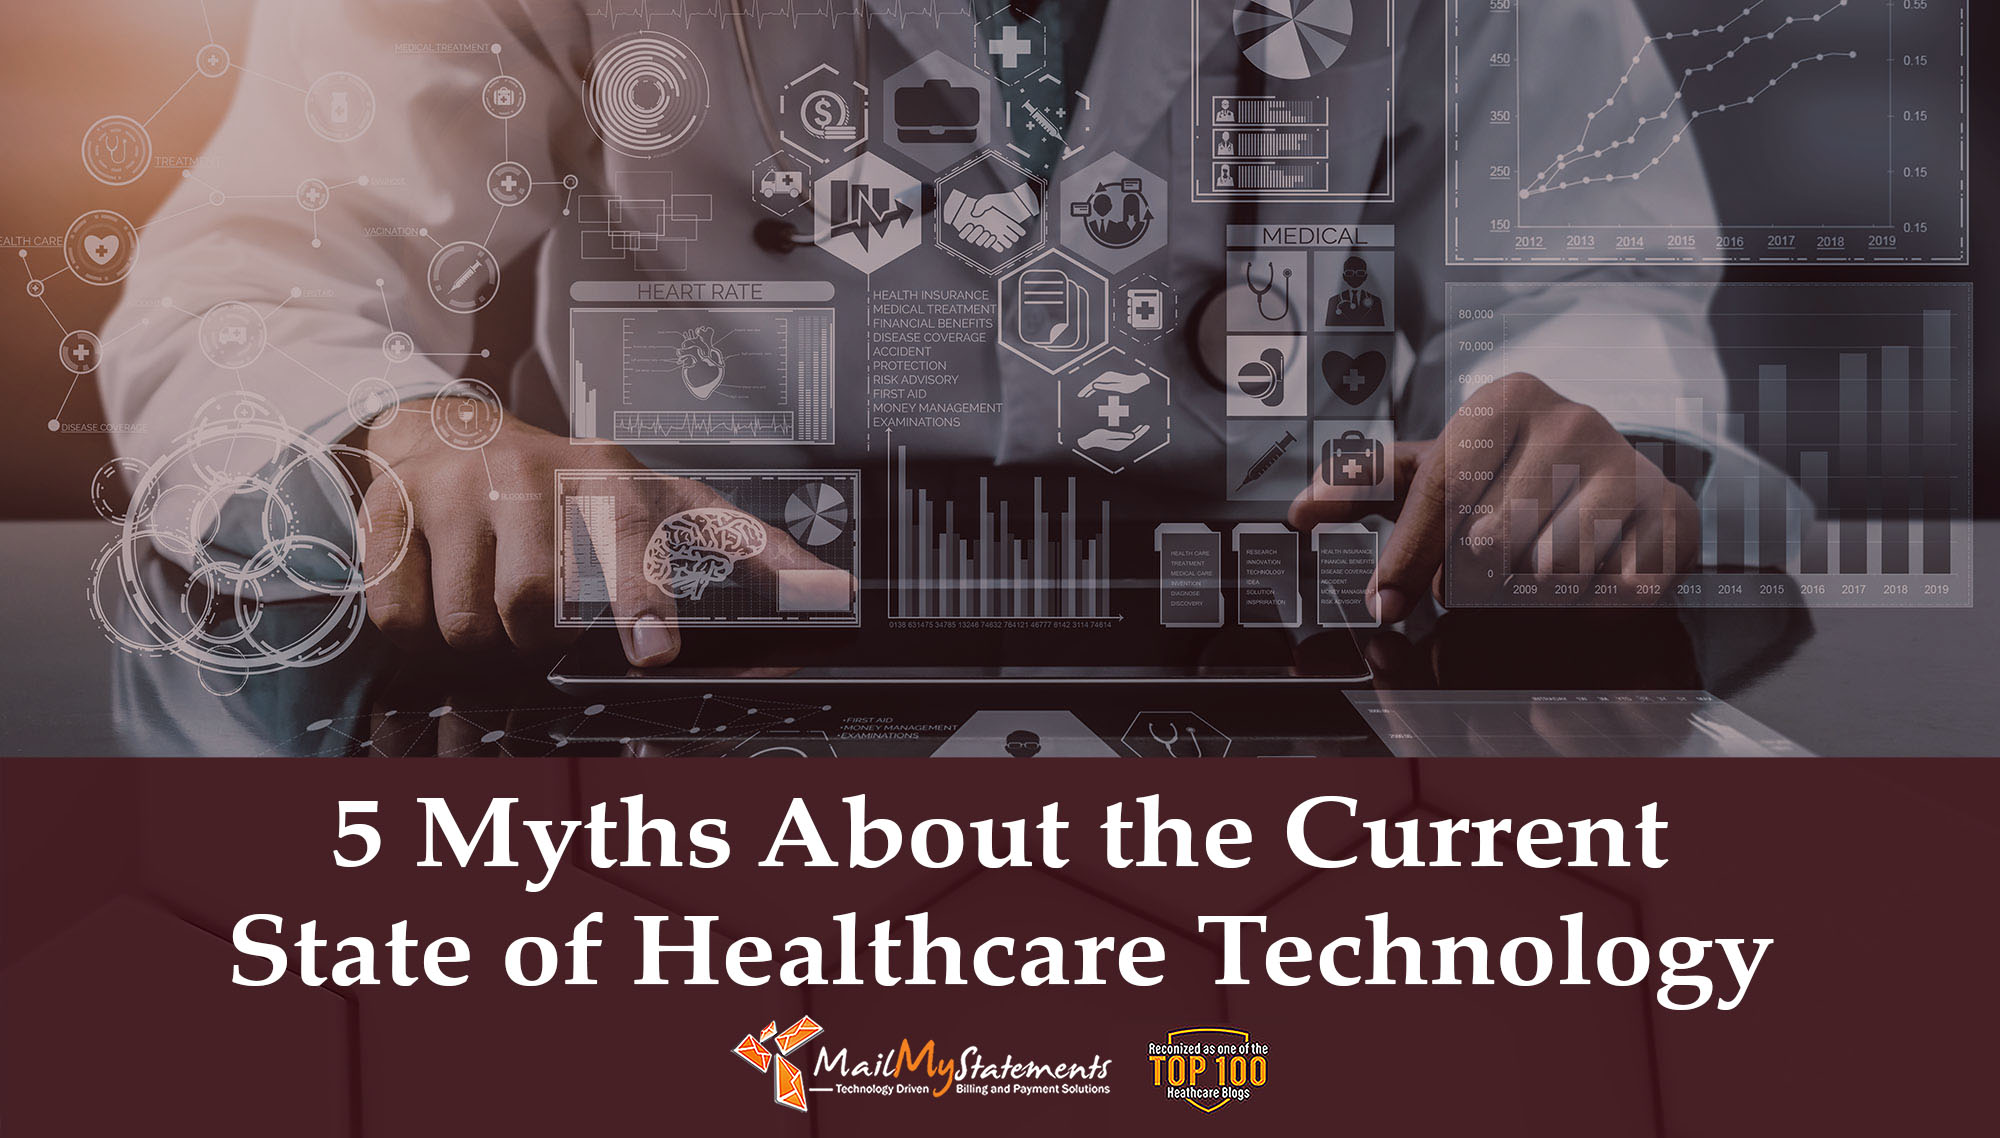 5 Myths About the Current State of Healthcare Technology